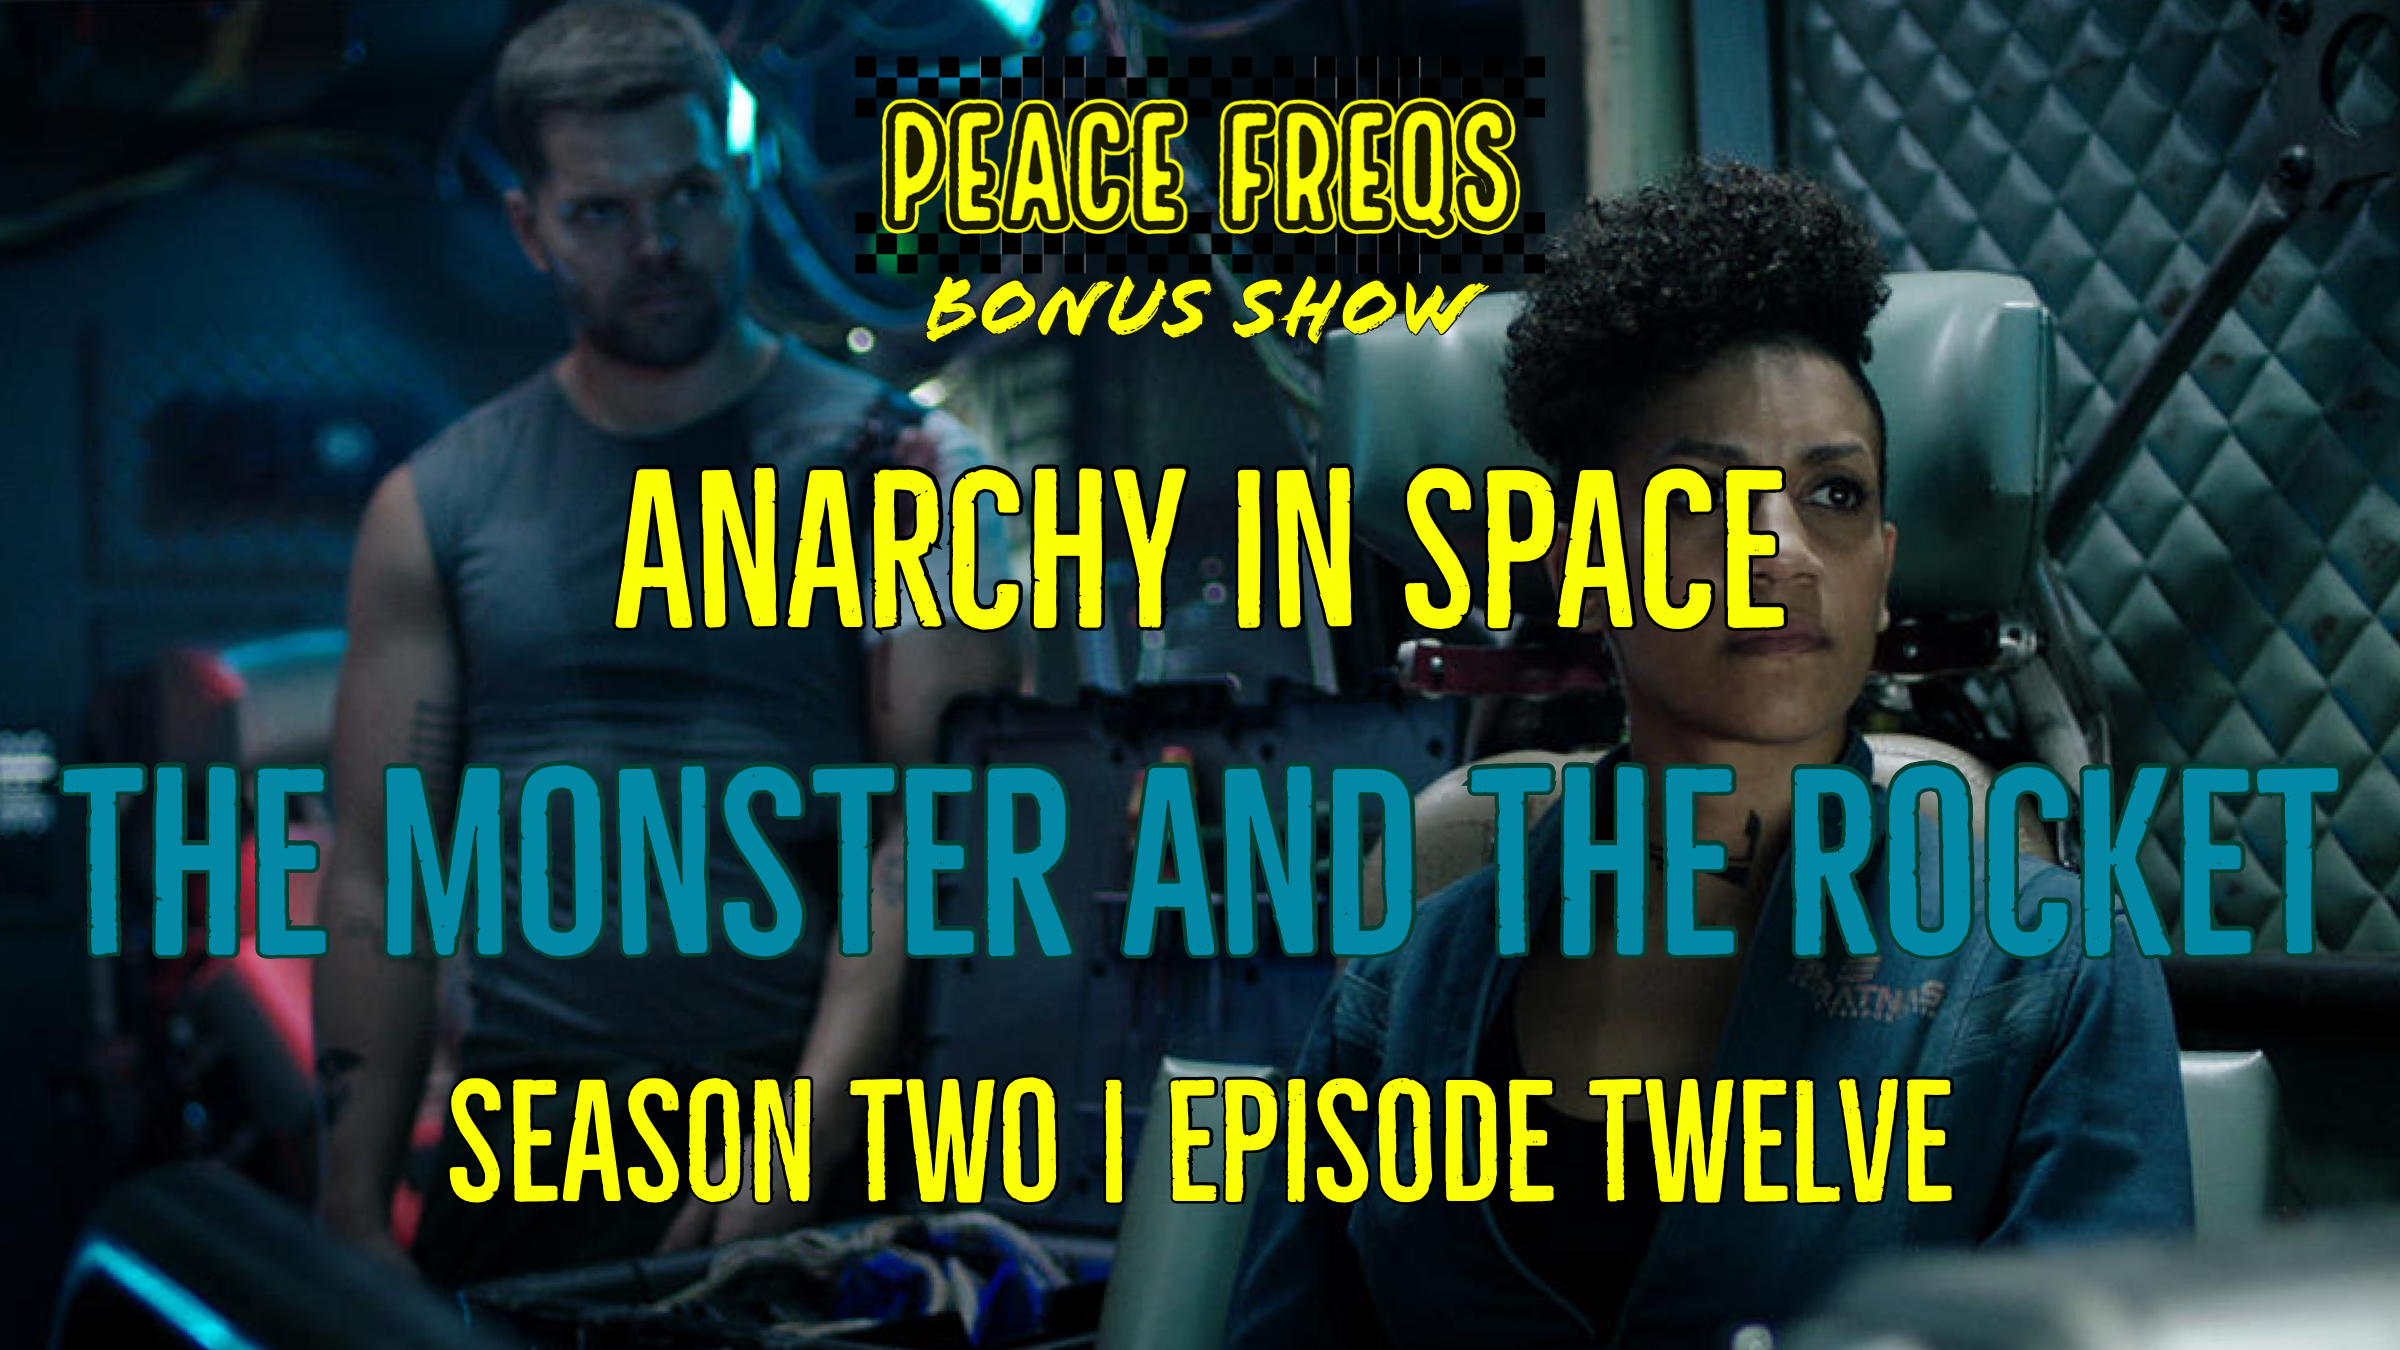 The Monster and the Rocket Review: Analyzing The Expanse – Anarchy In Space 022